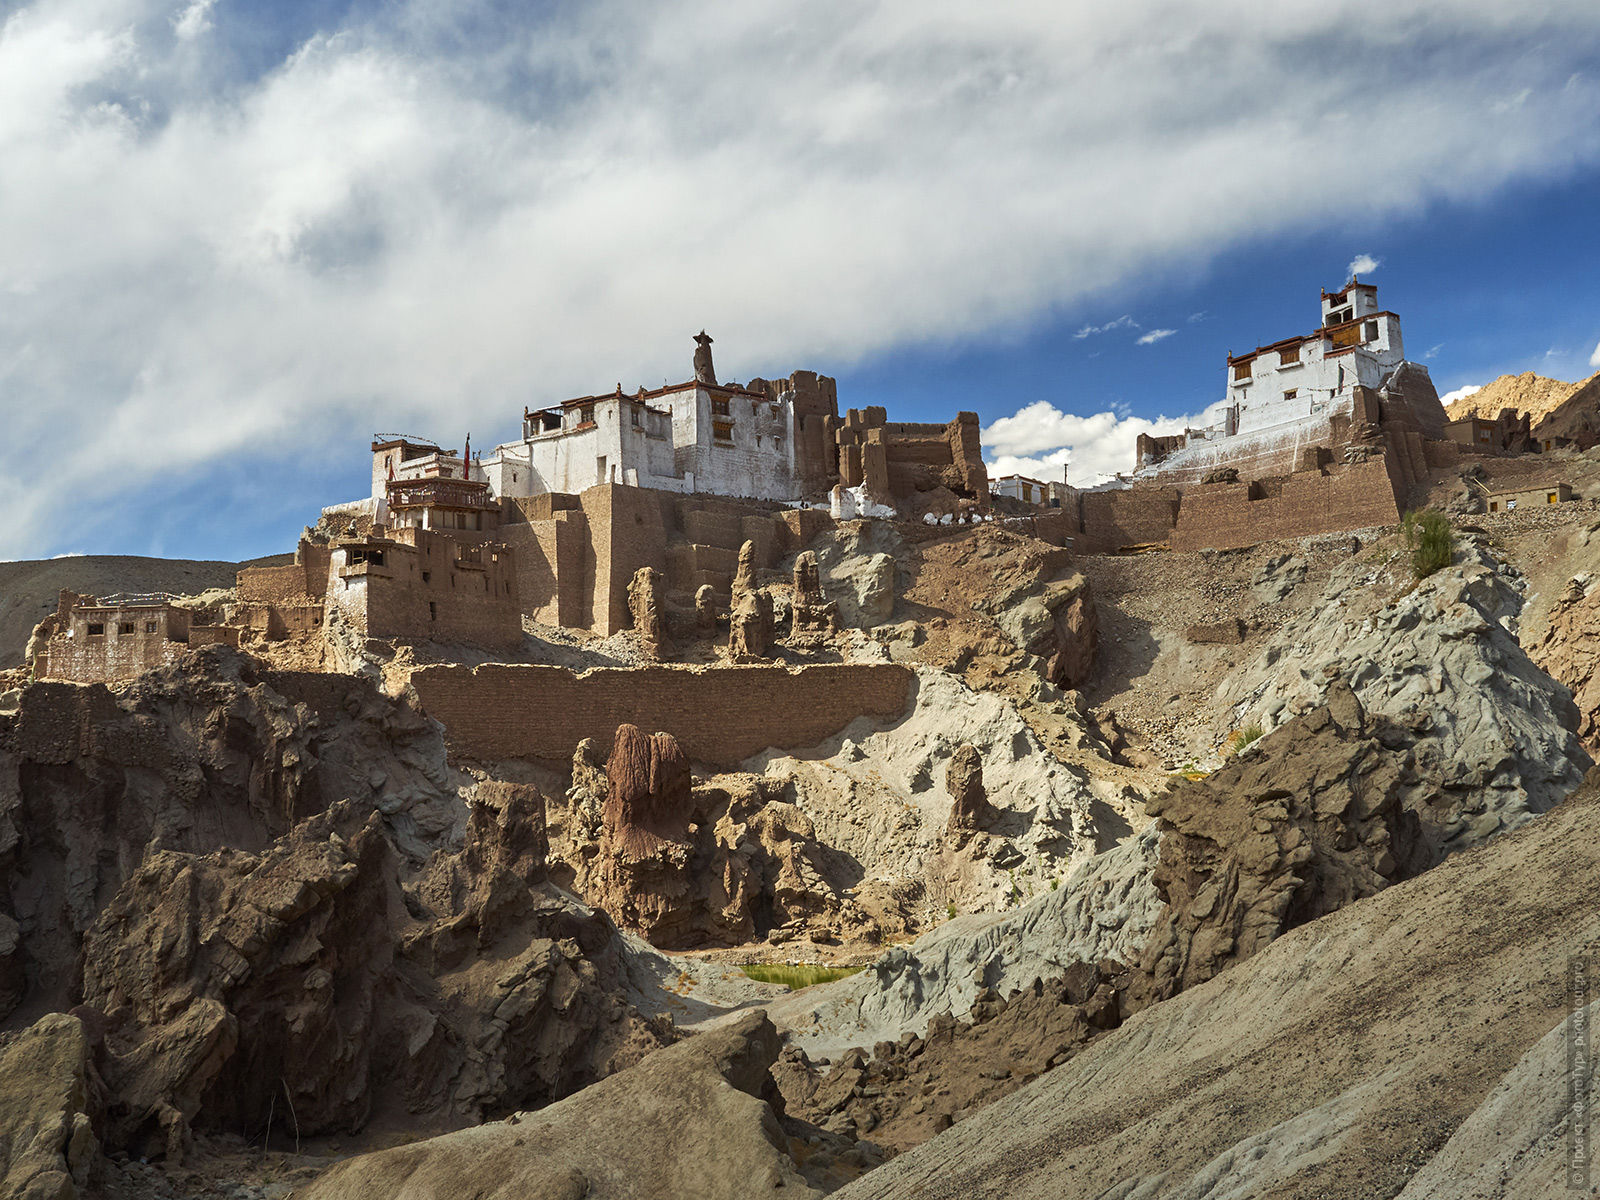 Tour Marathon in Ladakh, September 2018.